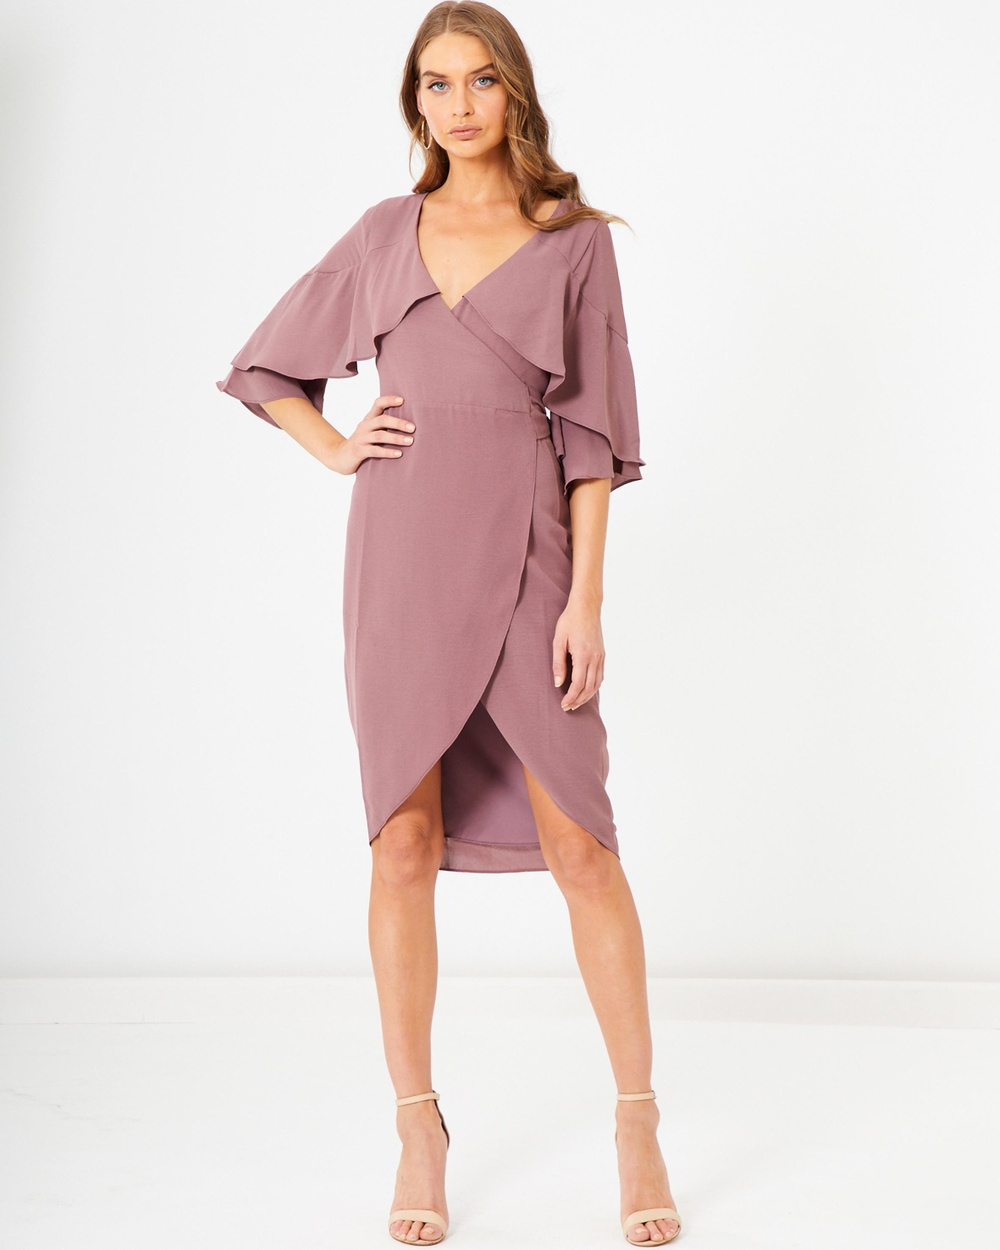 Photo of Tussah Taupe Ripley Frill Dress - buy Tussah dresses on sale online